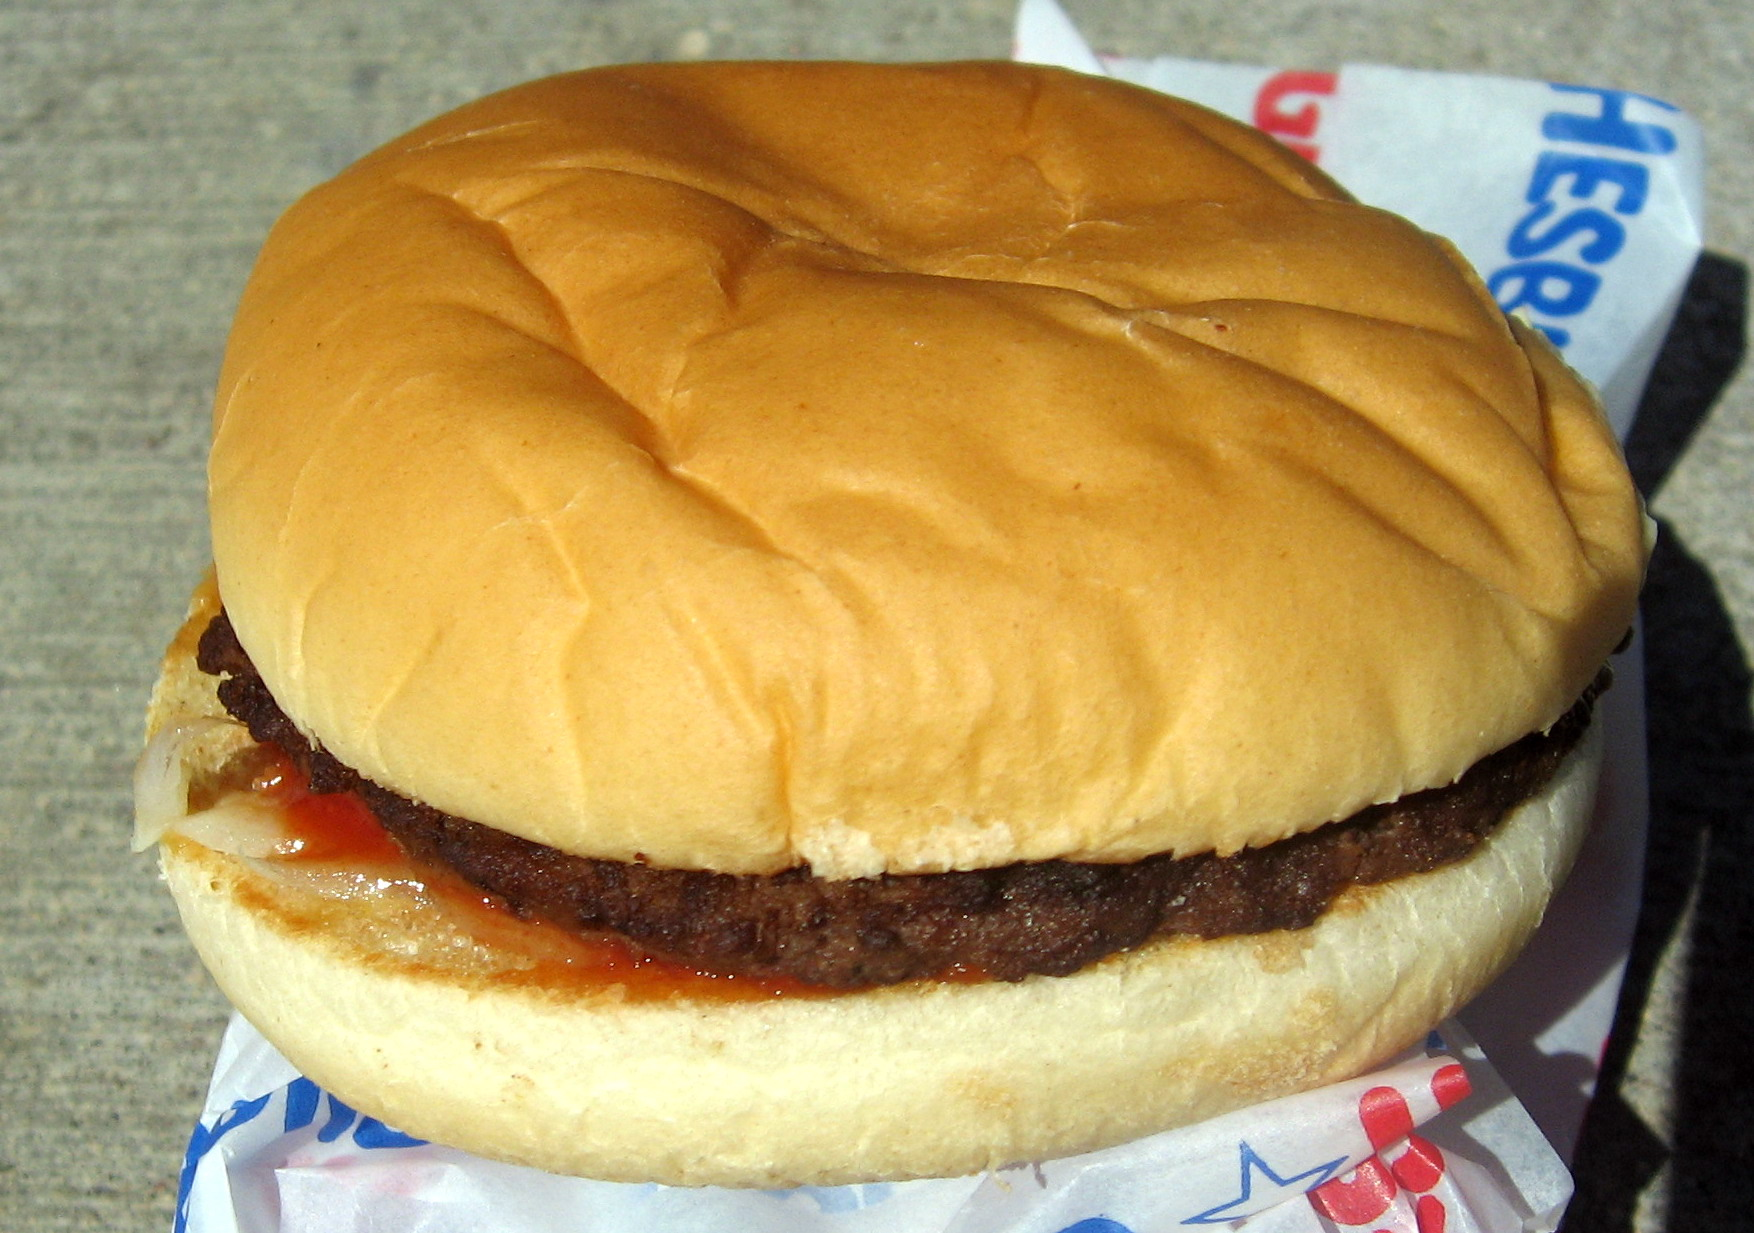 Burger King: Selling Whoppers in Japan Essay